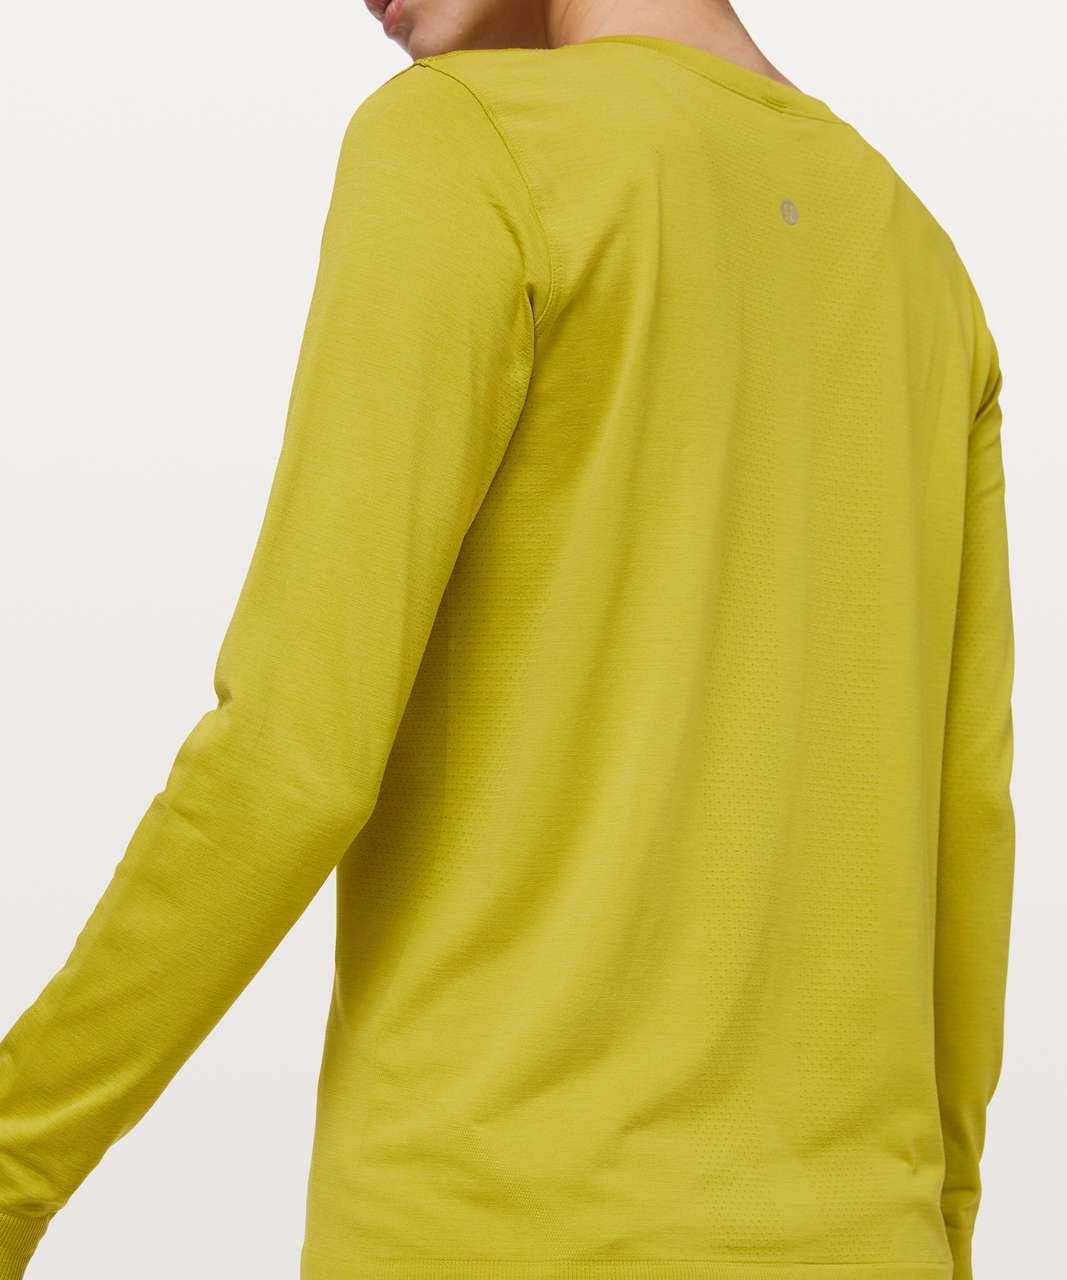 Lululemon Swiftly Tech Long Sleeve (Breeze) *Relaxed Fit - Golden Lime / Golden Lime